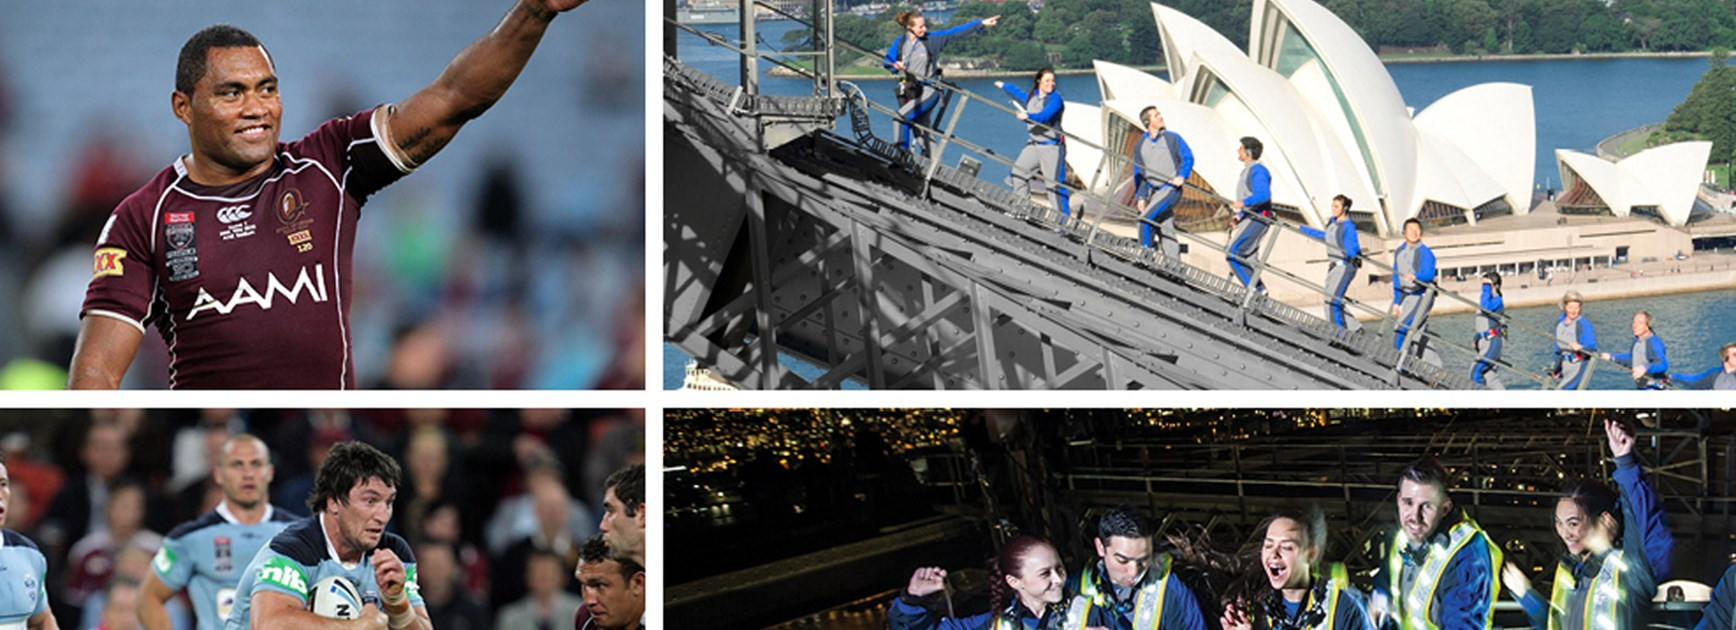 Climb the Sydney Harbour Bridge with legends of State of Origin on the eve of Game One of the 2016 series.